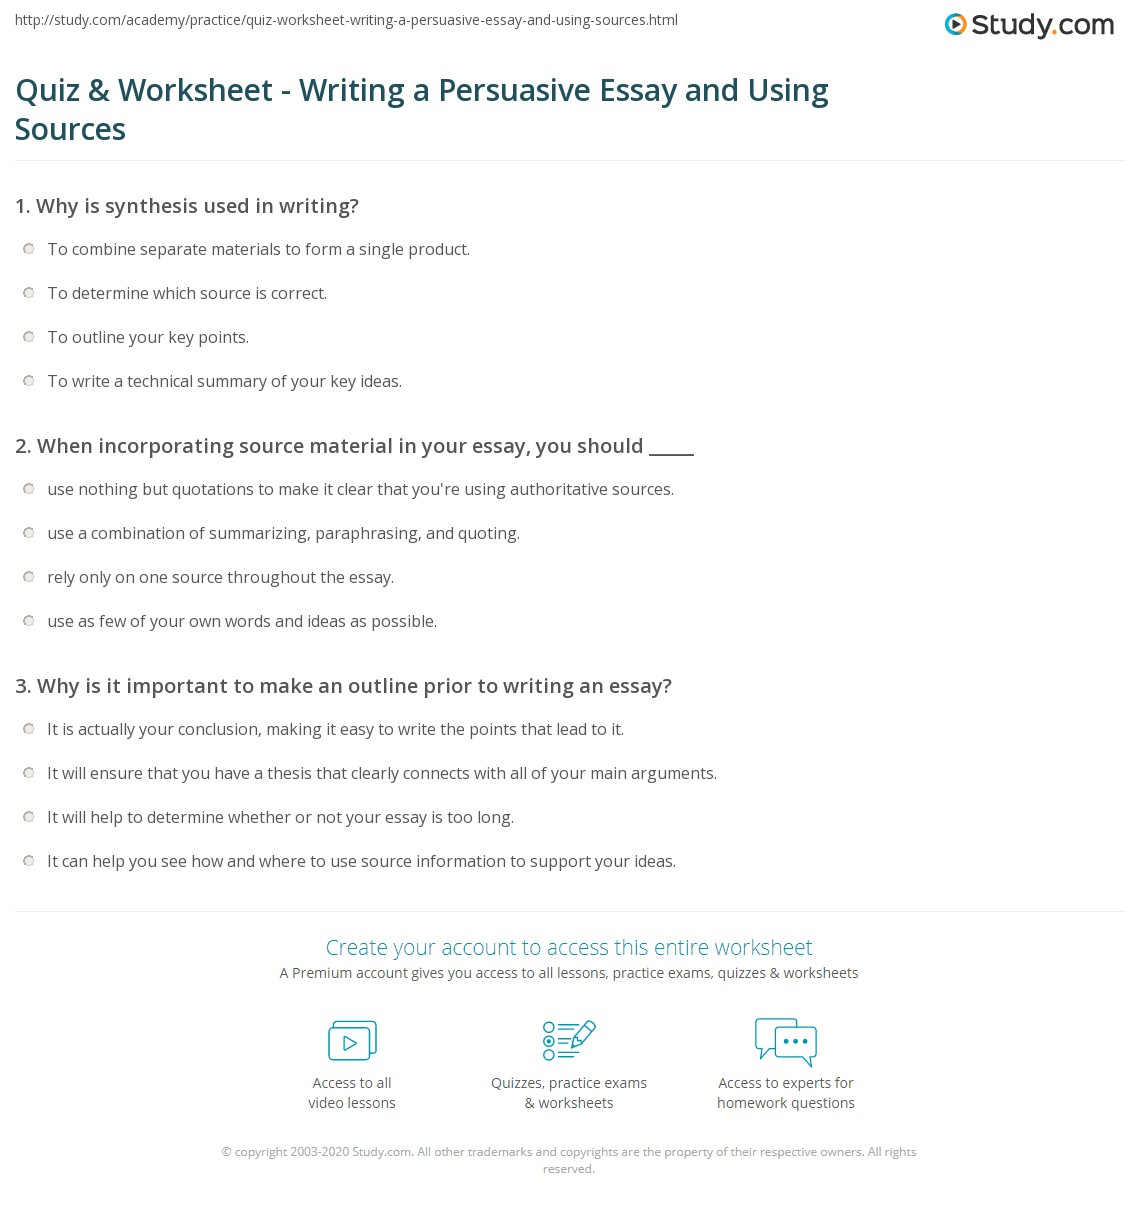 Print How To Write A Persuasive Essay And Use Several Sources Worksheet